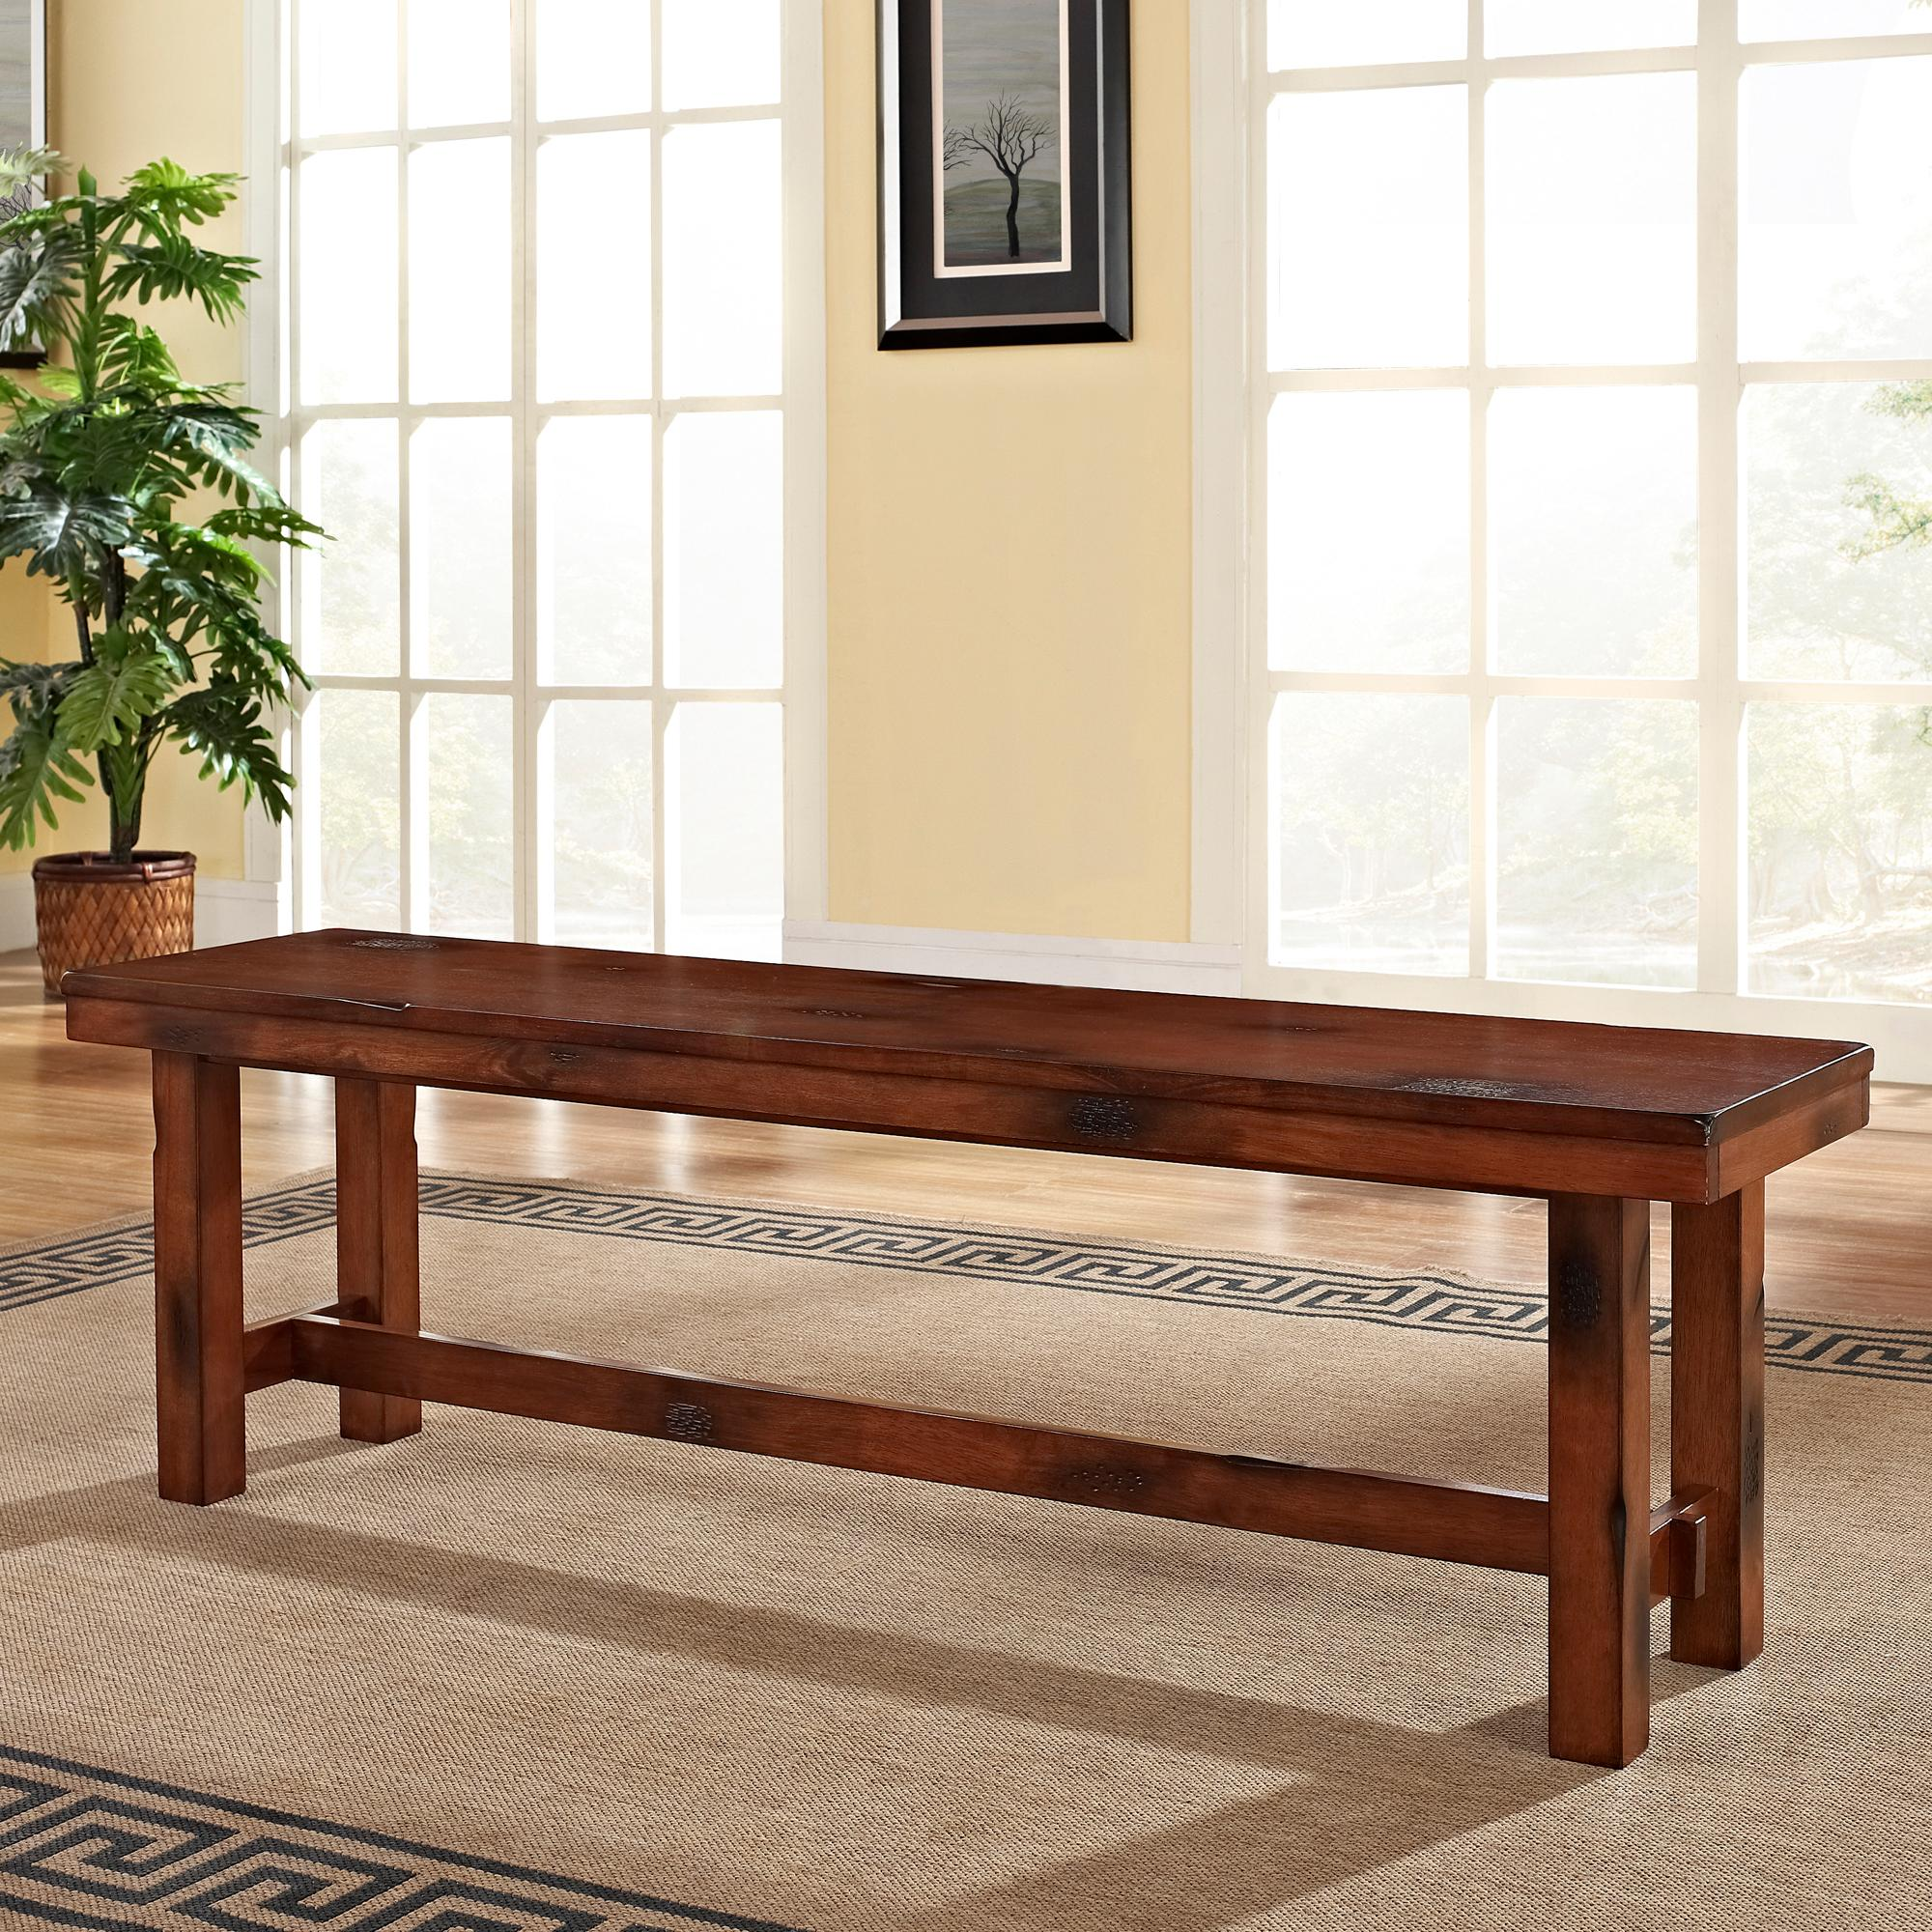 From the manufacturer. Amazon com  WE Furniture Solid Wood Dark Oak Dining Bench  Kitchen